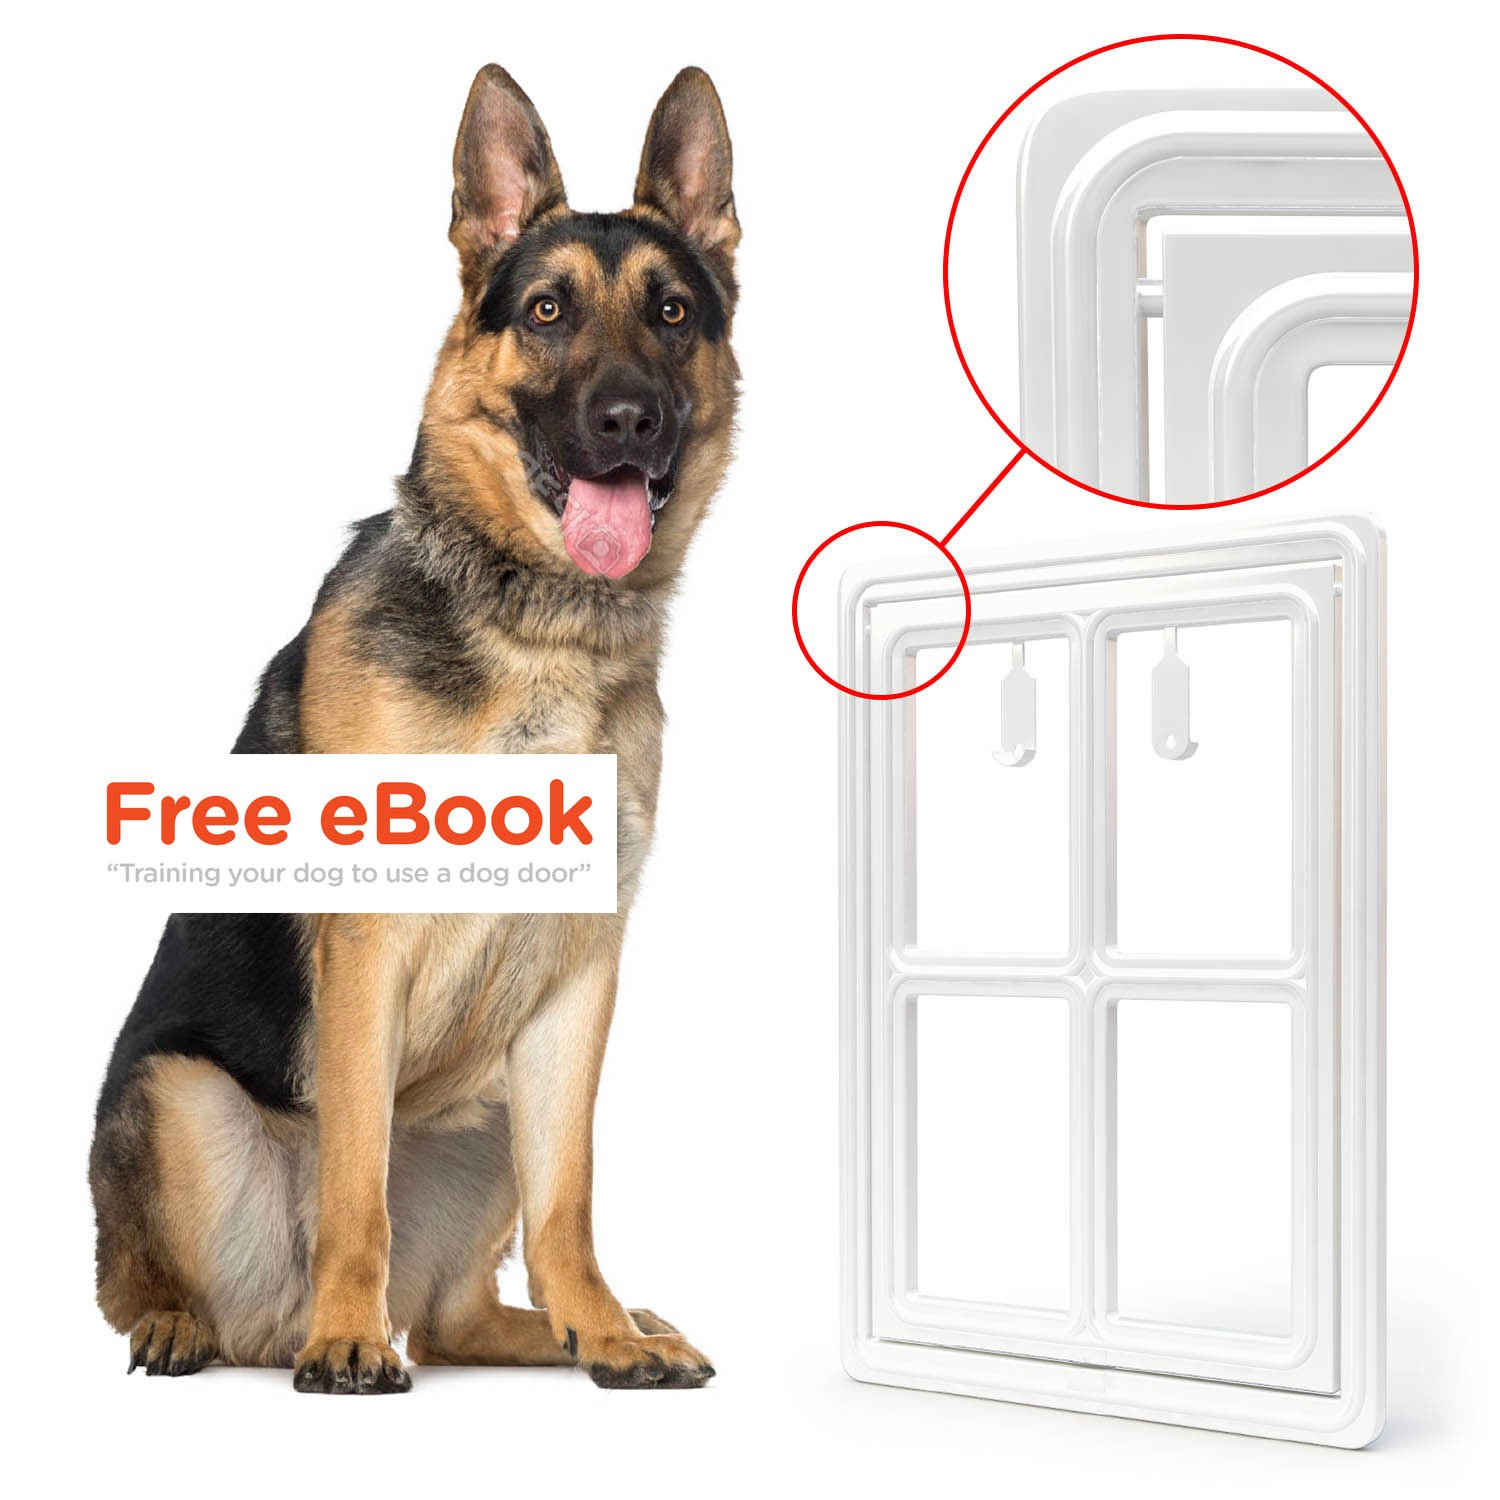 Pet Dog Door for Screens - Two-Way Self-Locking Screen Dog Door with Magnetic Lock - Different No-Break Hinge - White Plastic Patio Dog Door Large - 12 in. x 16 in. - by All Dog's Needs